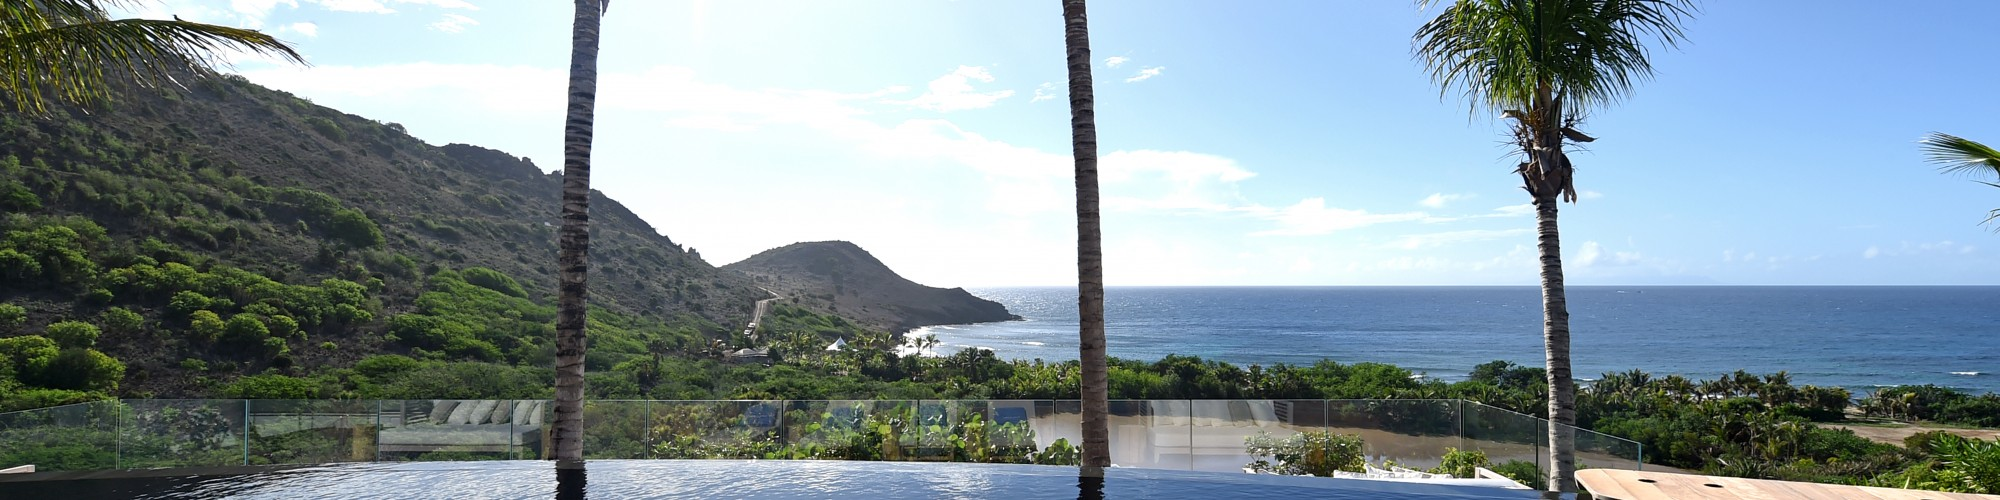 Hotel Le Toiny, St Barths